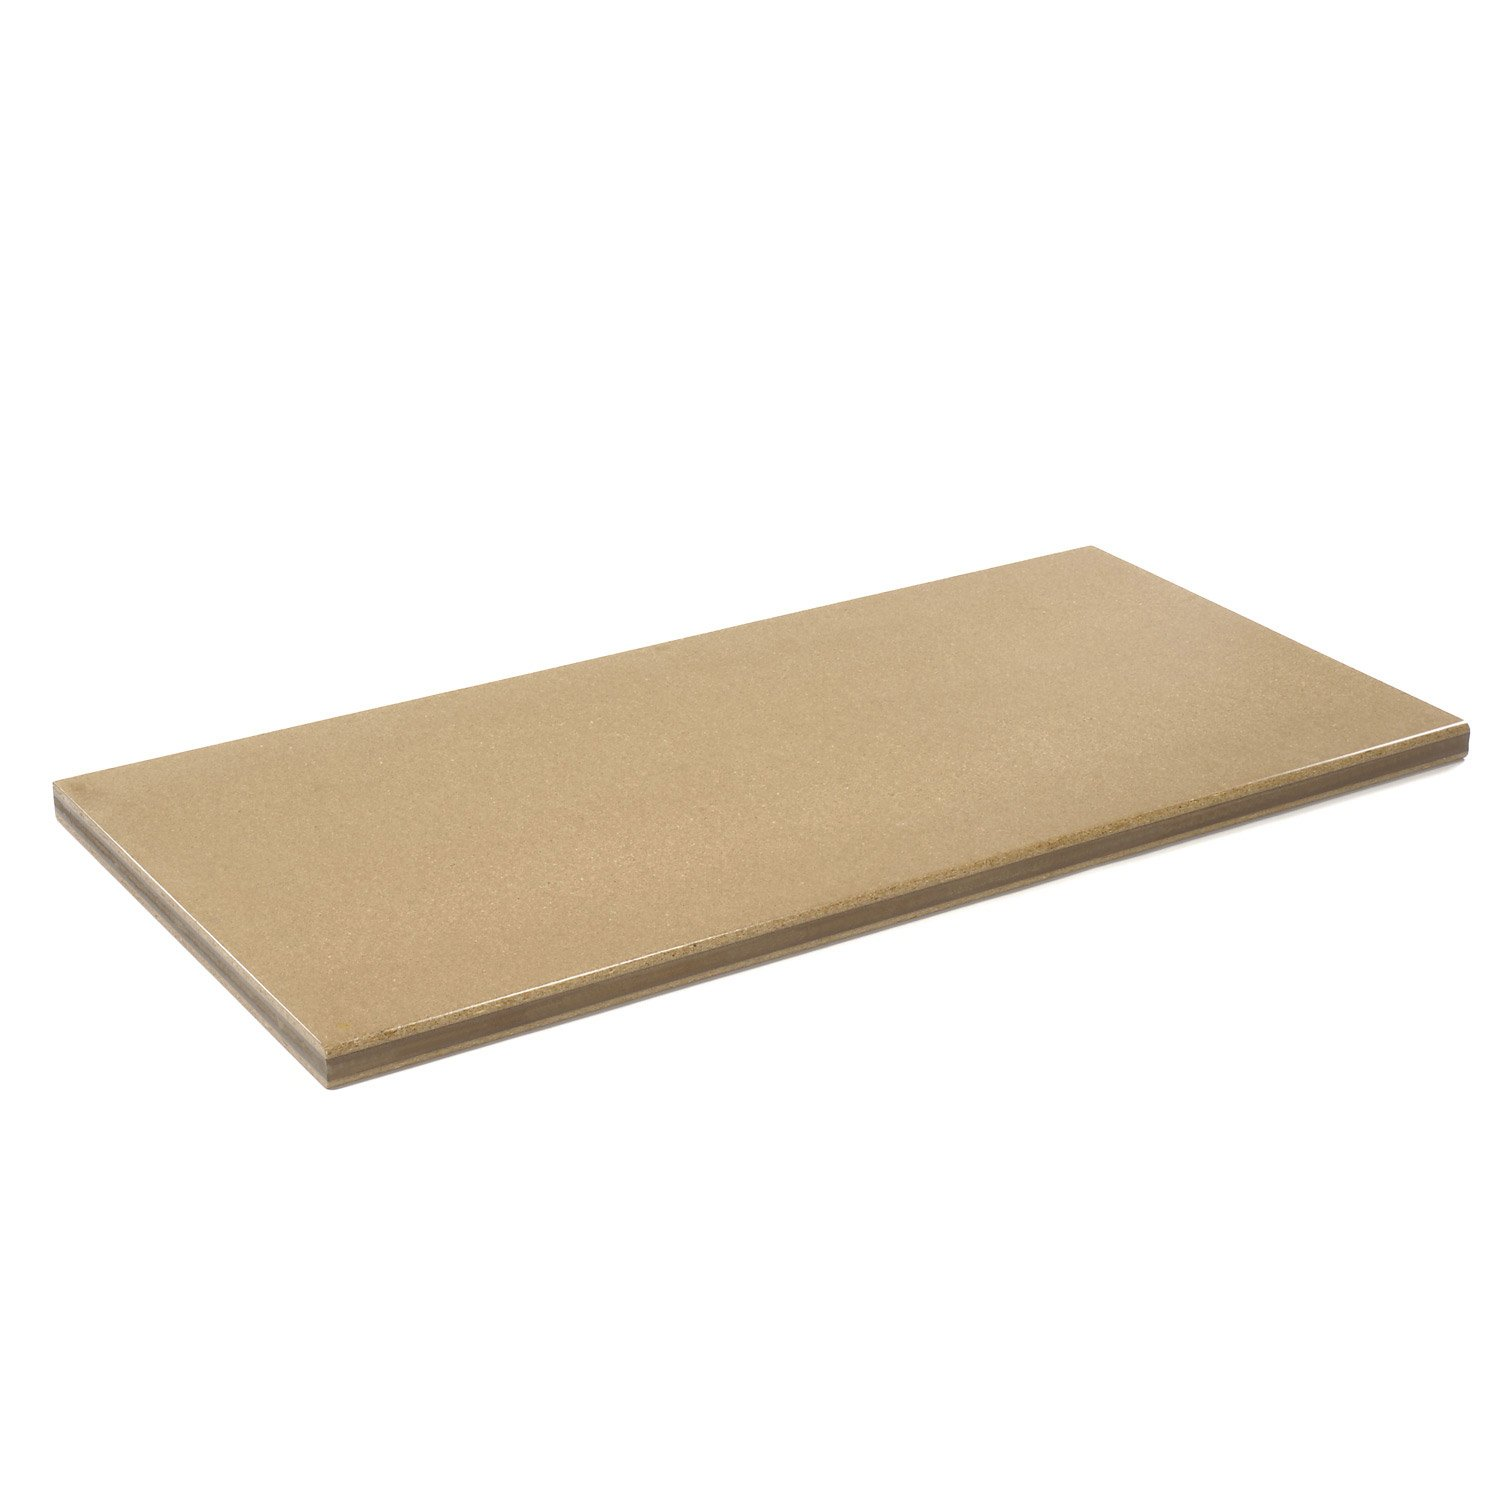 Workbench Top - Shop Top Safety Edge, 72'' W x 36'' D x 2-1/4'' Thick